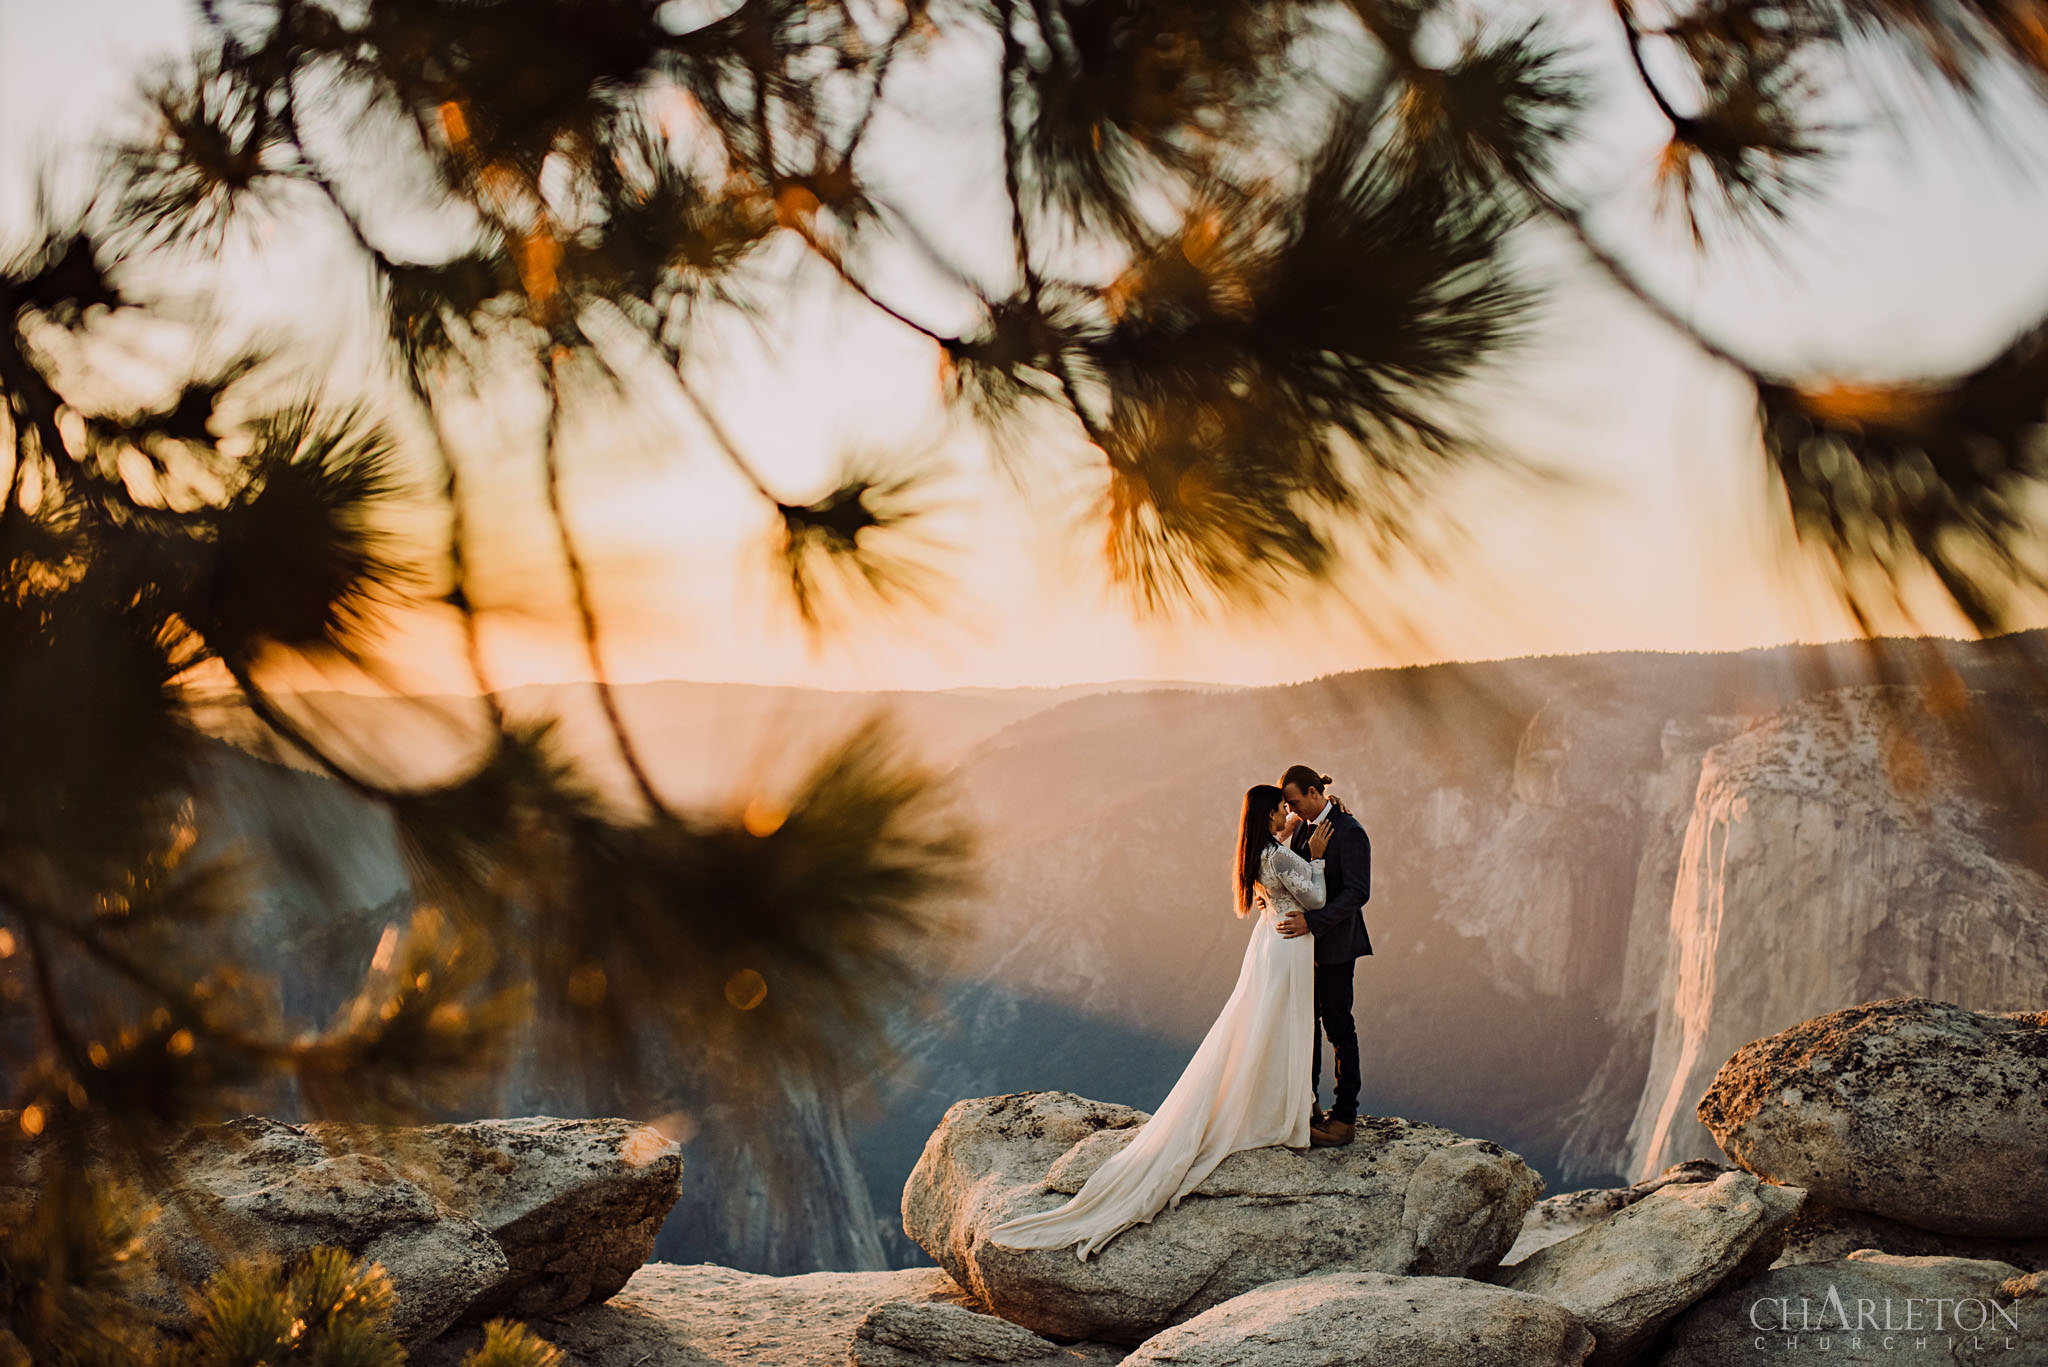 Yosemite elopement of adventure couple at Taft Point over a cliff during sunset after their wedding ceremony